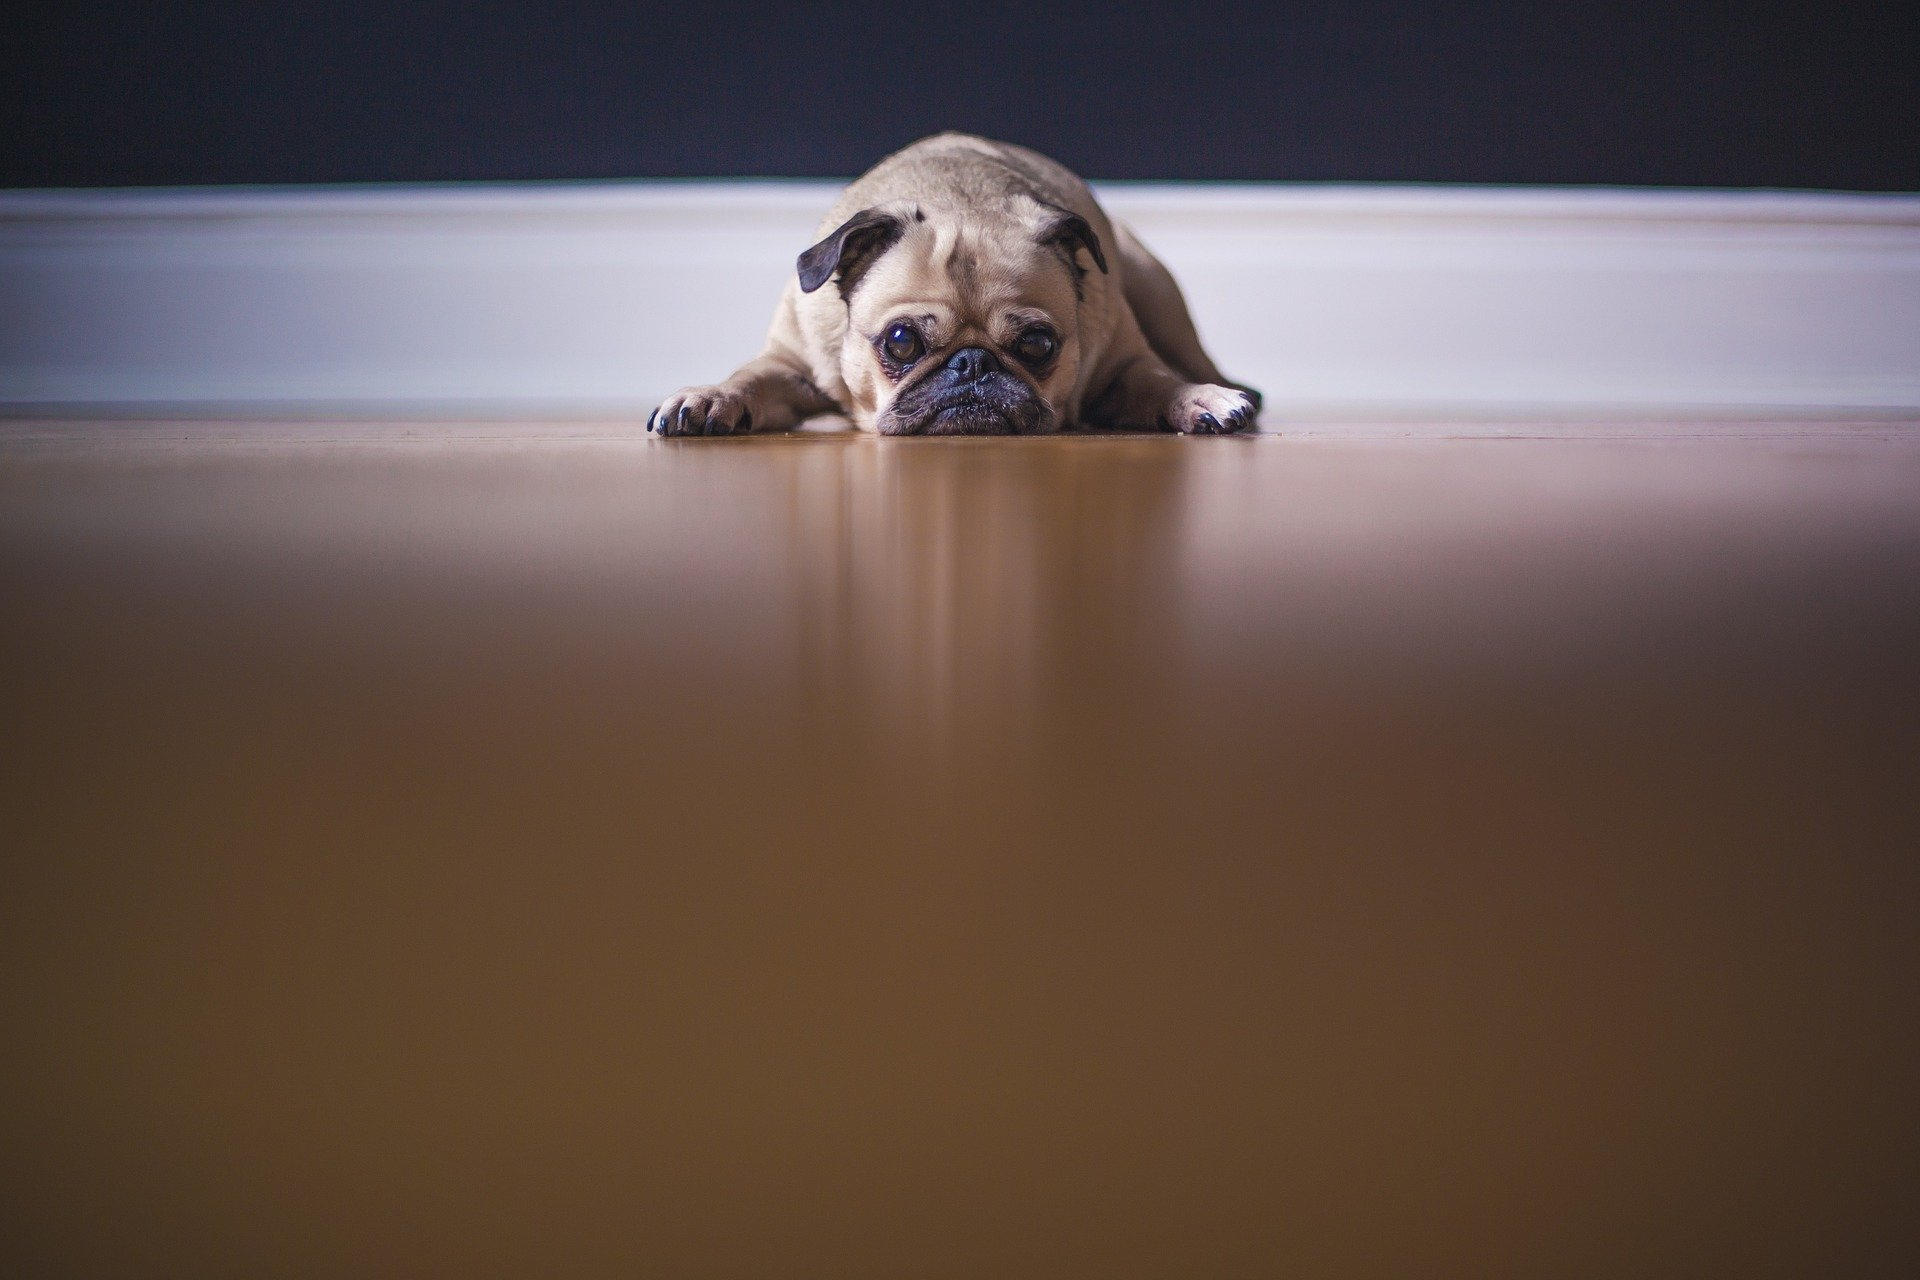 aftercare for pet dental surgery - pug on hardwood floor